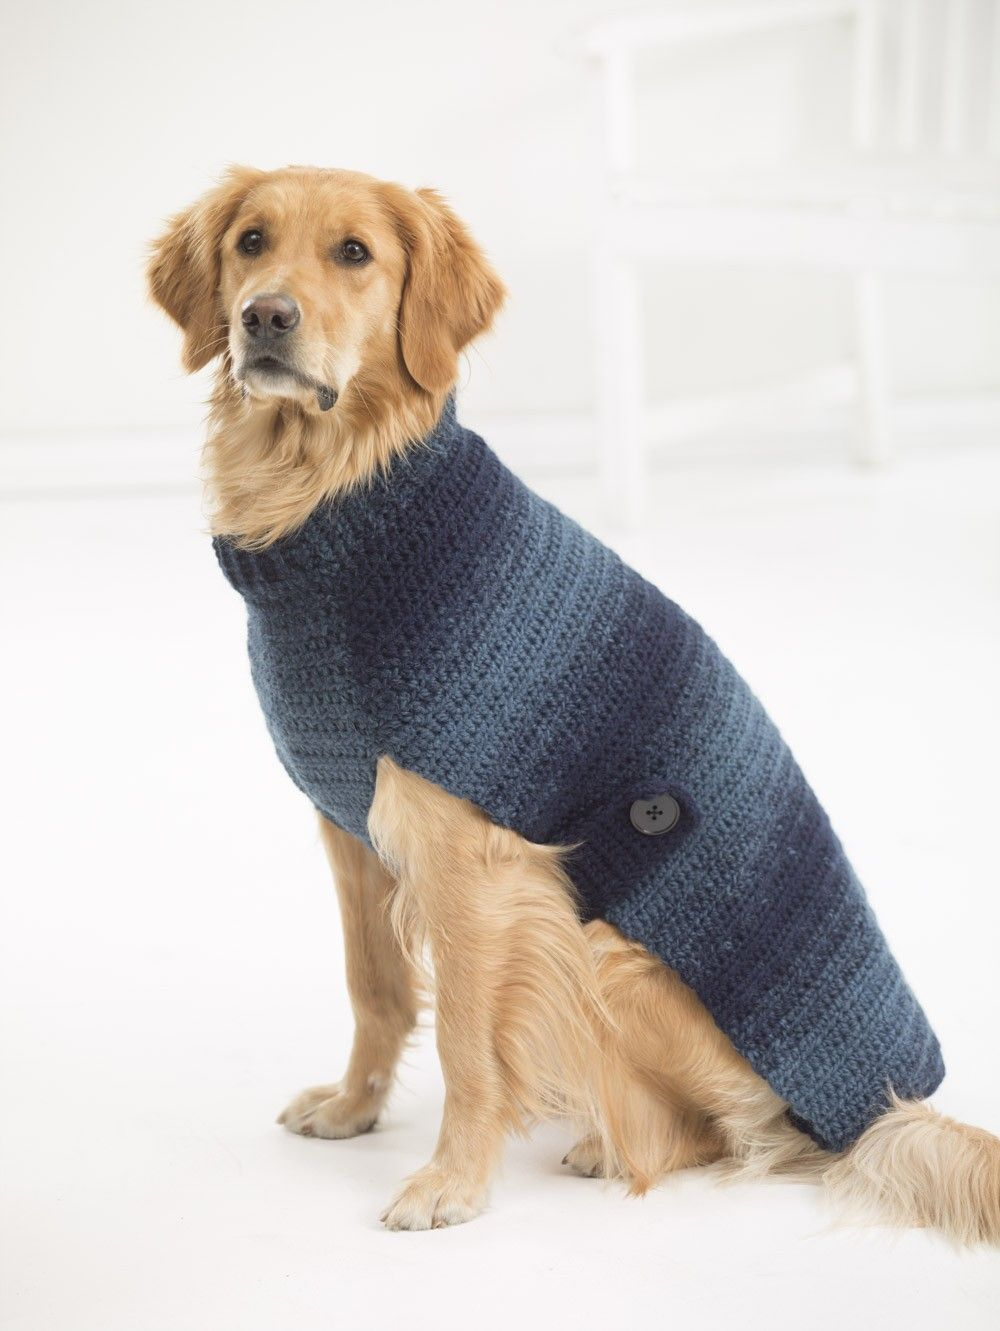 Sweater pattern is free - just the yarn costs | knits | Pinterest